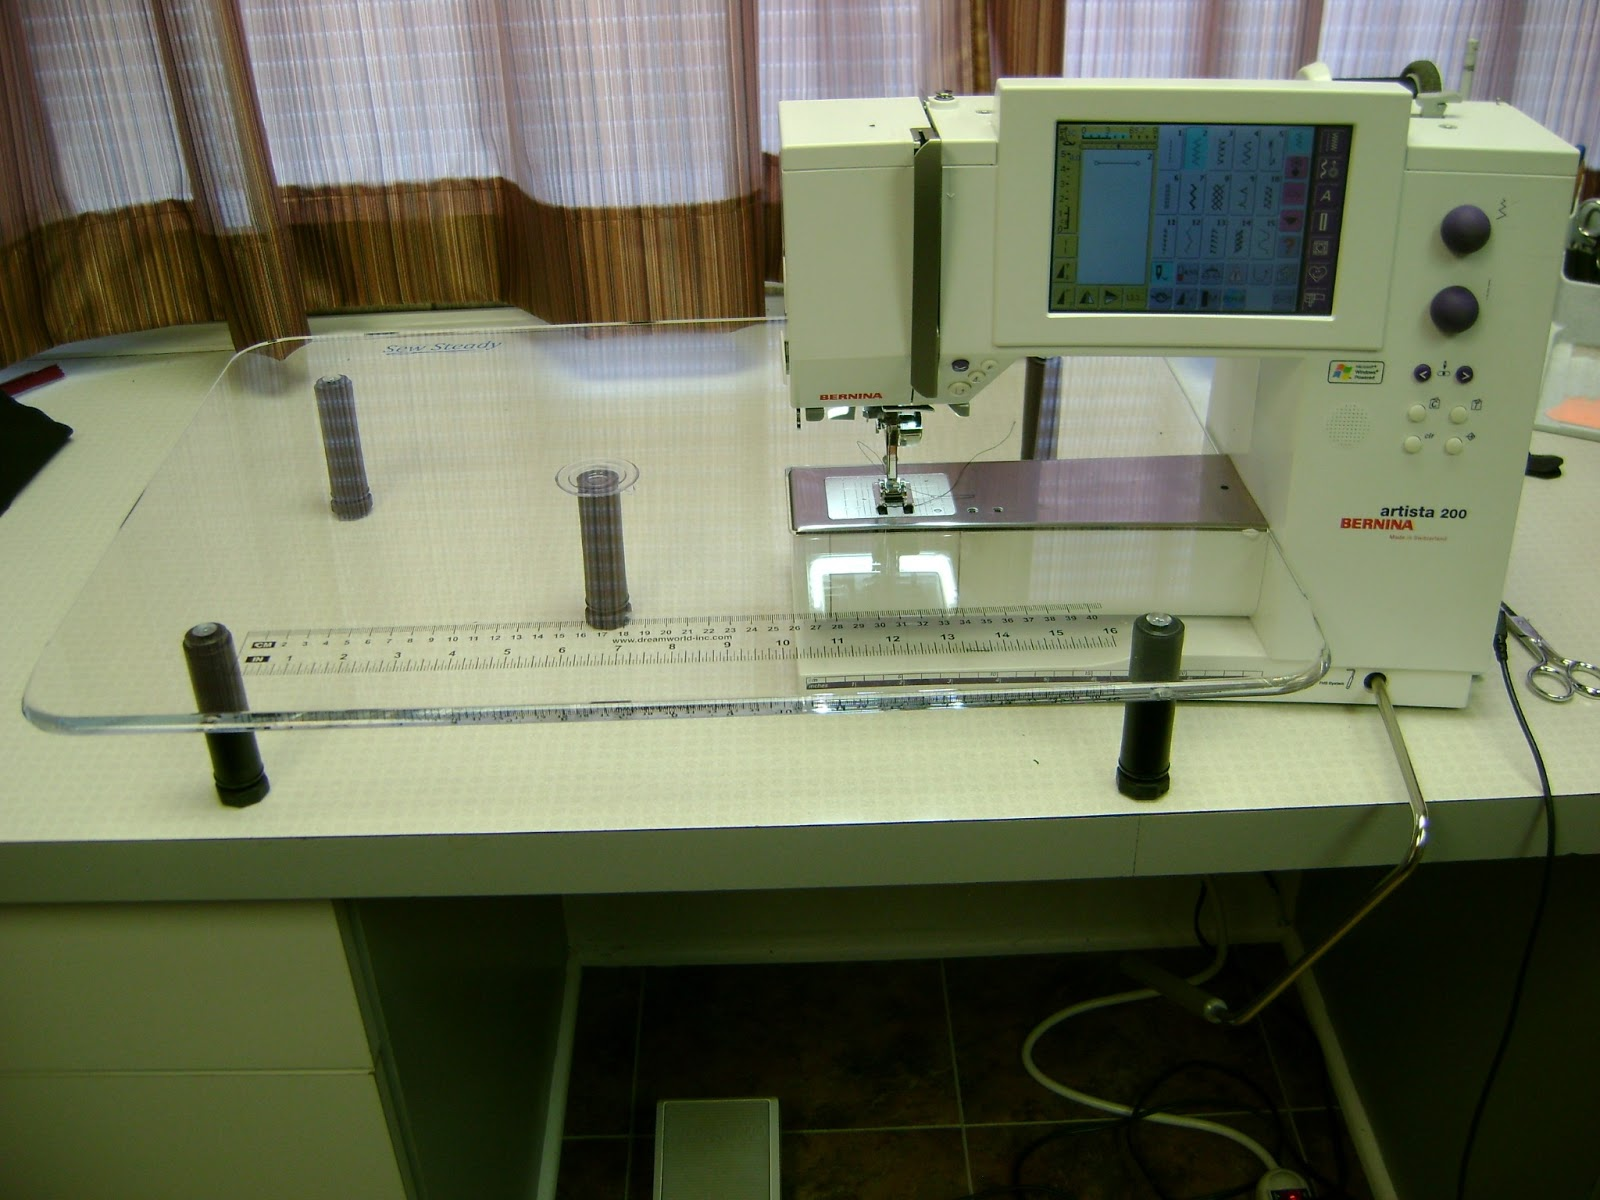 plexiglass extension table for sewing machine